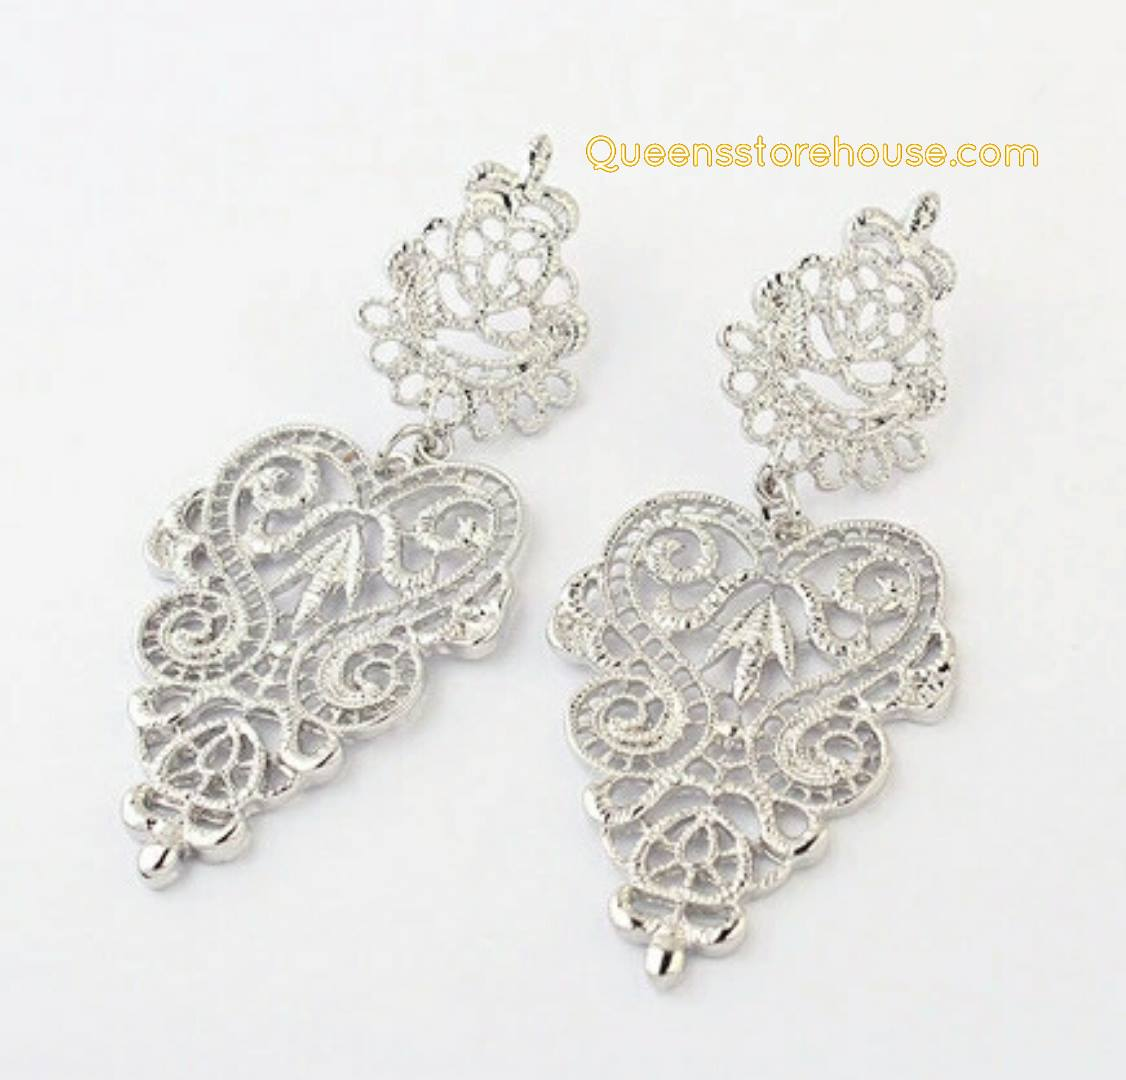 Vintage Statement Textured Chandelier Earrings Silver - The ...